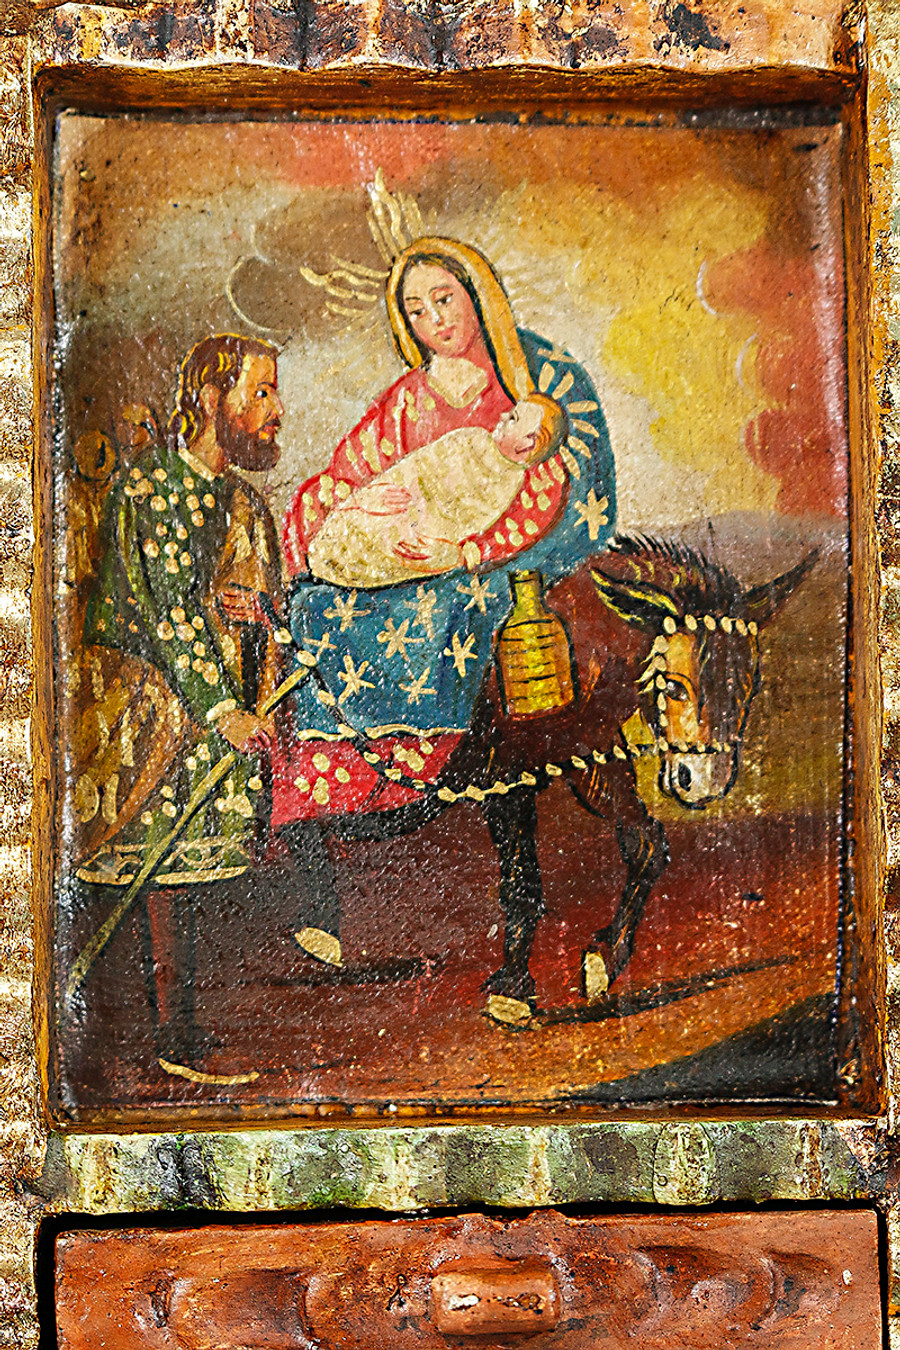 Flight from Egypt Colonial Peru Art Handmade Retablo Handcarved Altarpiece (71-100-04434)